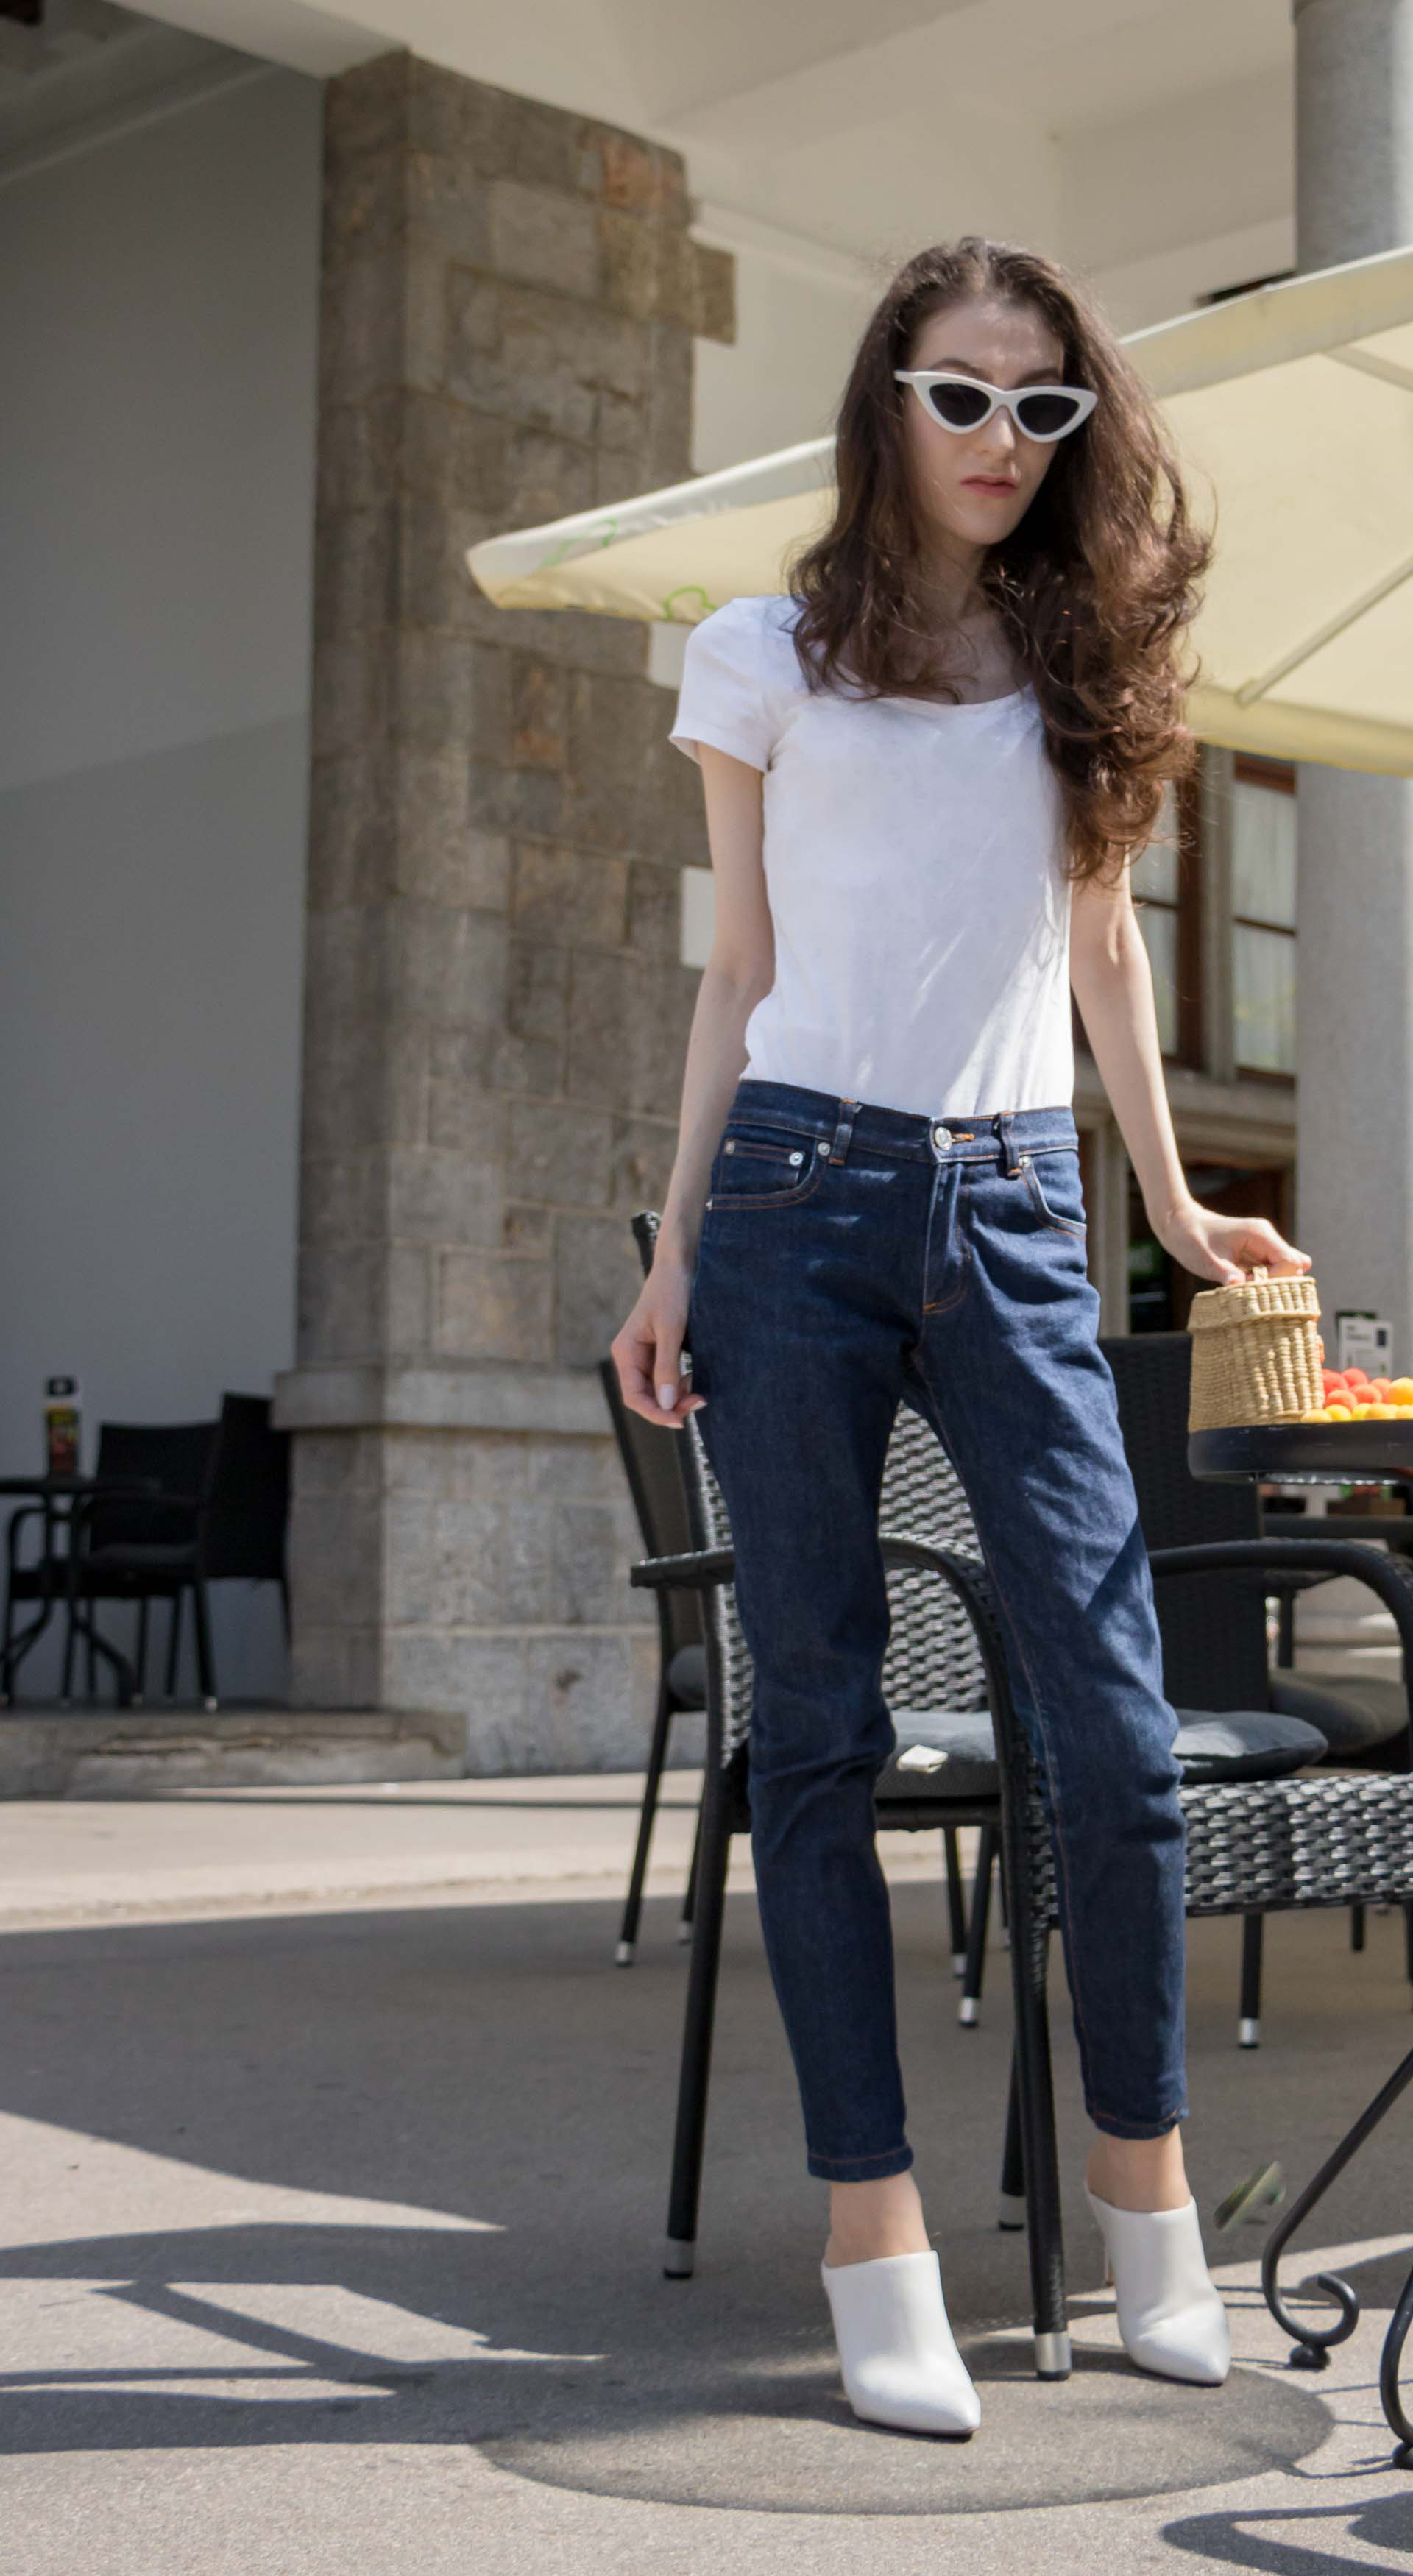 Veronika Lipar Fashion Editor of Brunette from Wall Street wearing dark blue tapered jeans from A.P.C., H&M white T-shirt, Nannacay basket bag, white mules and Adam Selman x Le Specs white cat eye Lolita sunglasses on the street for drinks